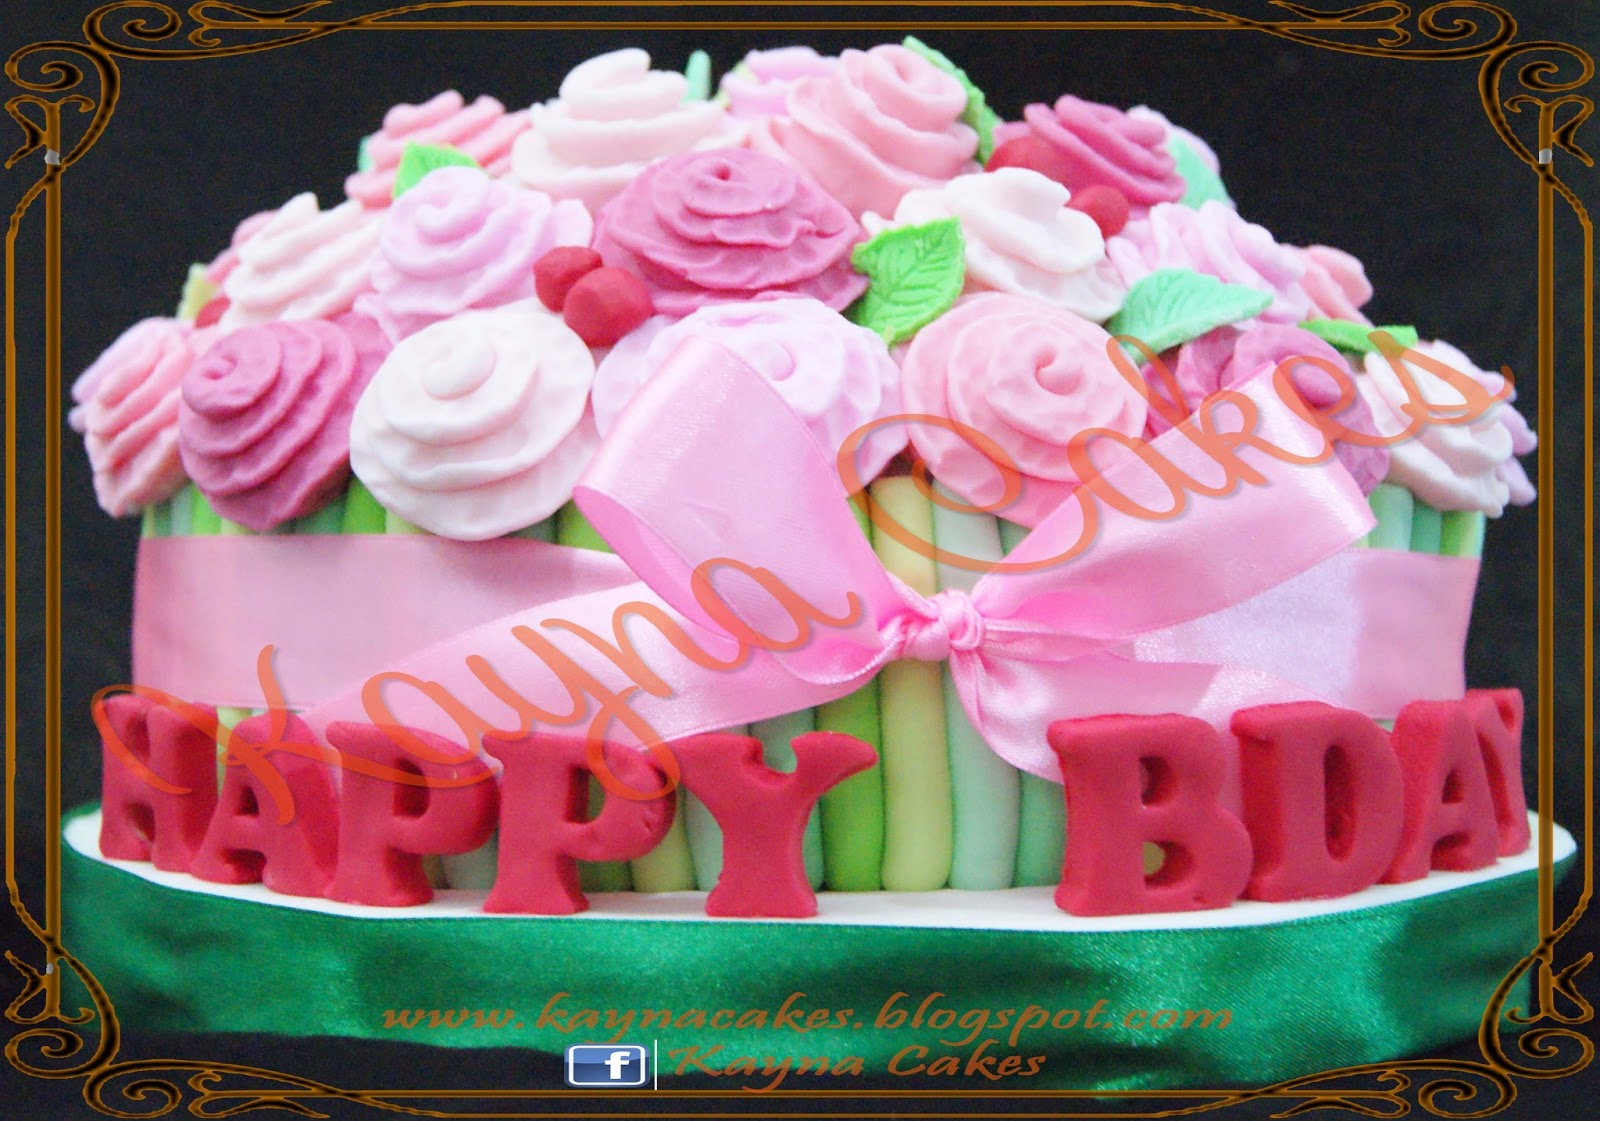 Kayna cakes and cupcakes mommies bouquet of roses cake mommies bouquet of roses cake dhlflorist Images